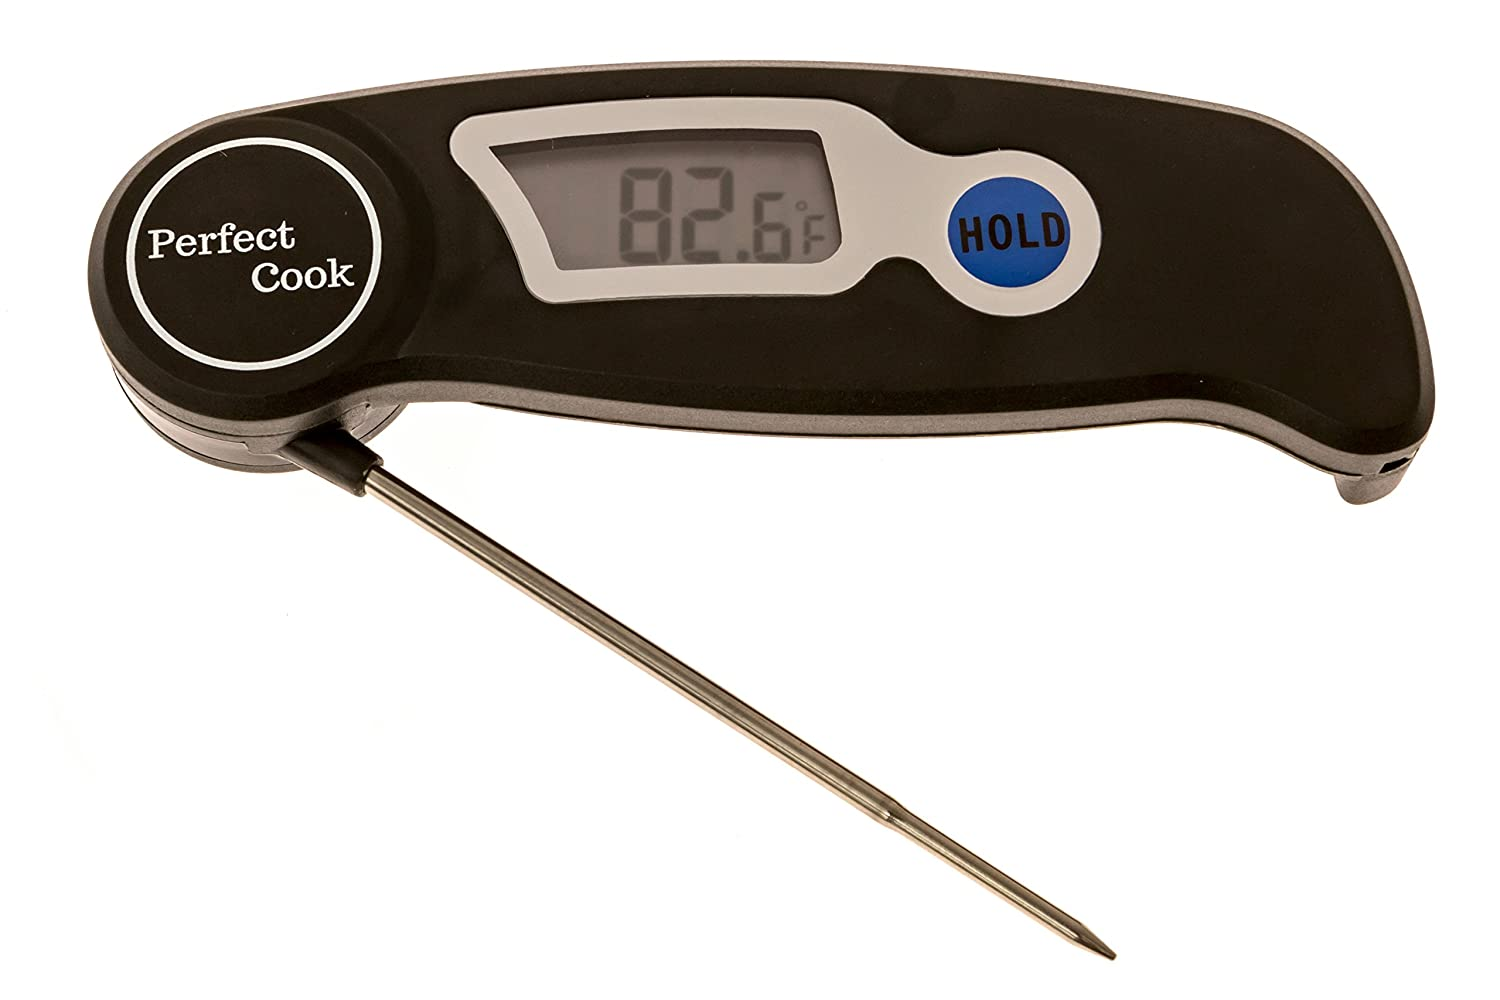 Perfect Cook - Digital Instant read Thermometer with Foldable stainless